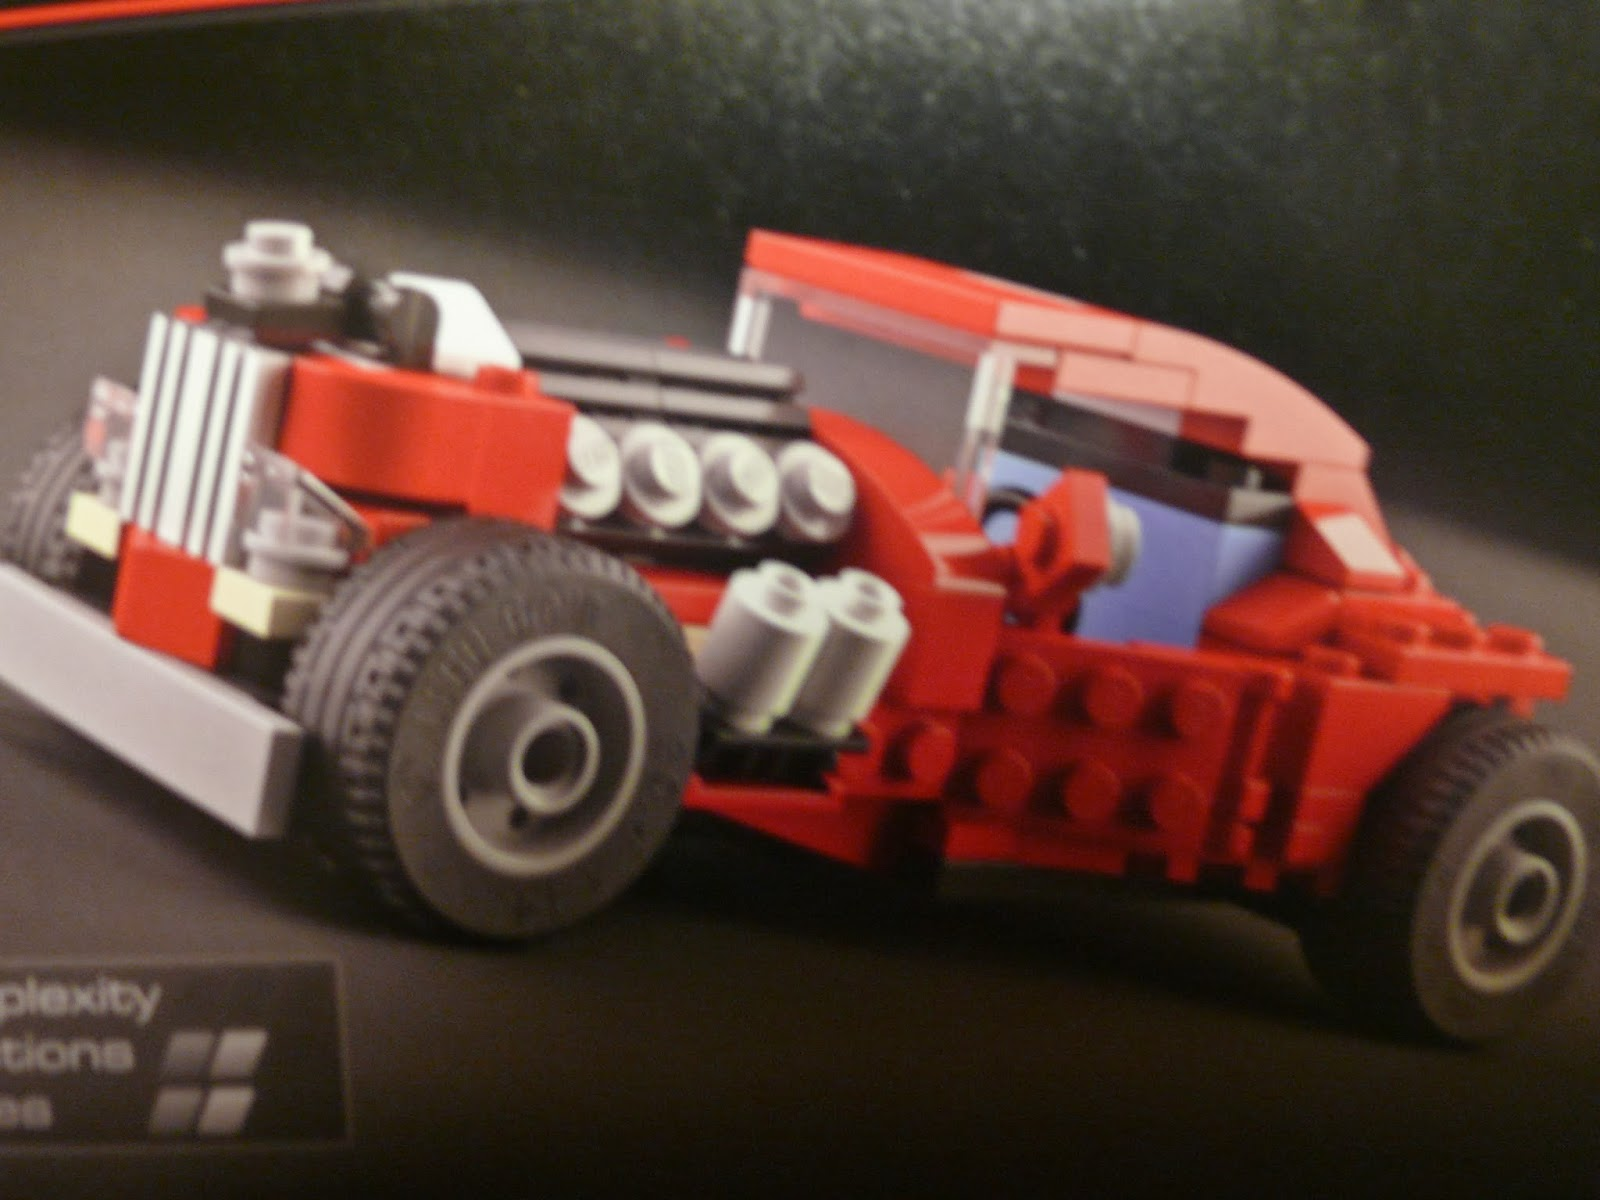 The Legology Robotic Realm Book Review More Amazing Vehicles